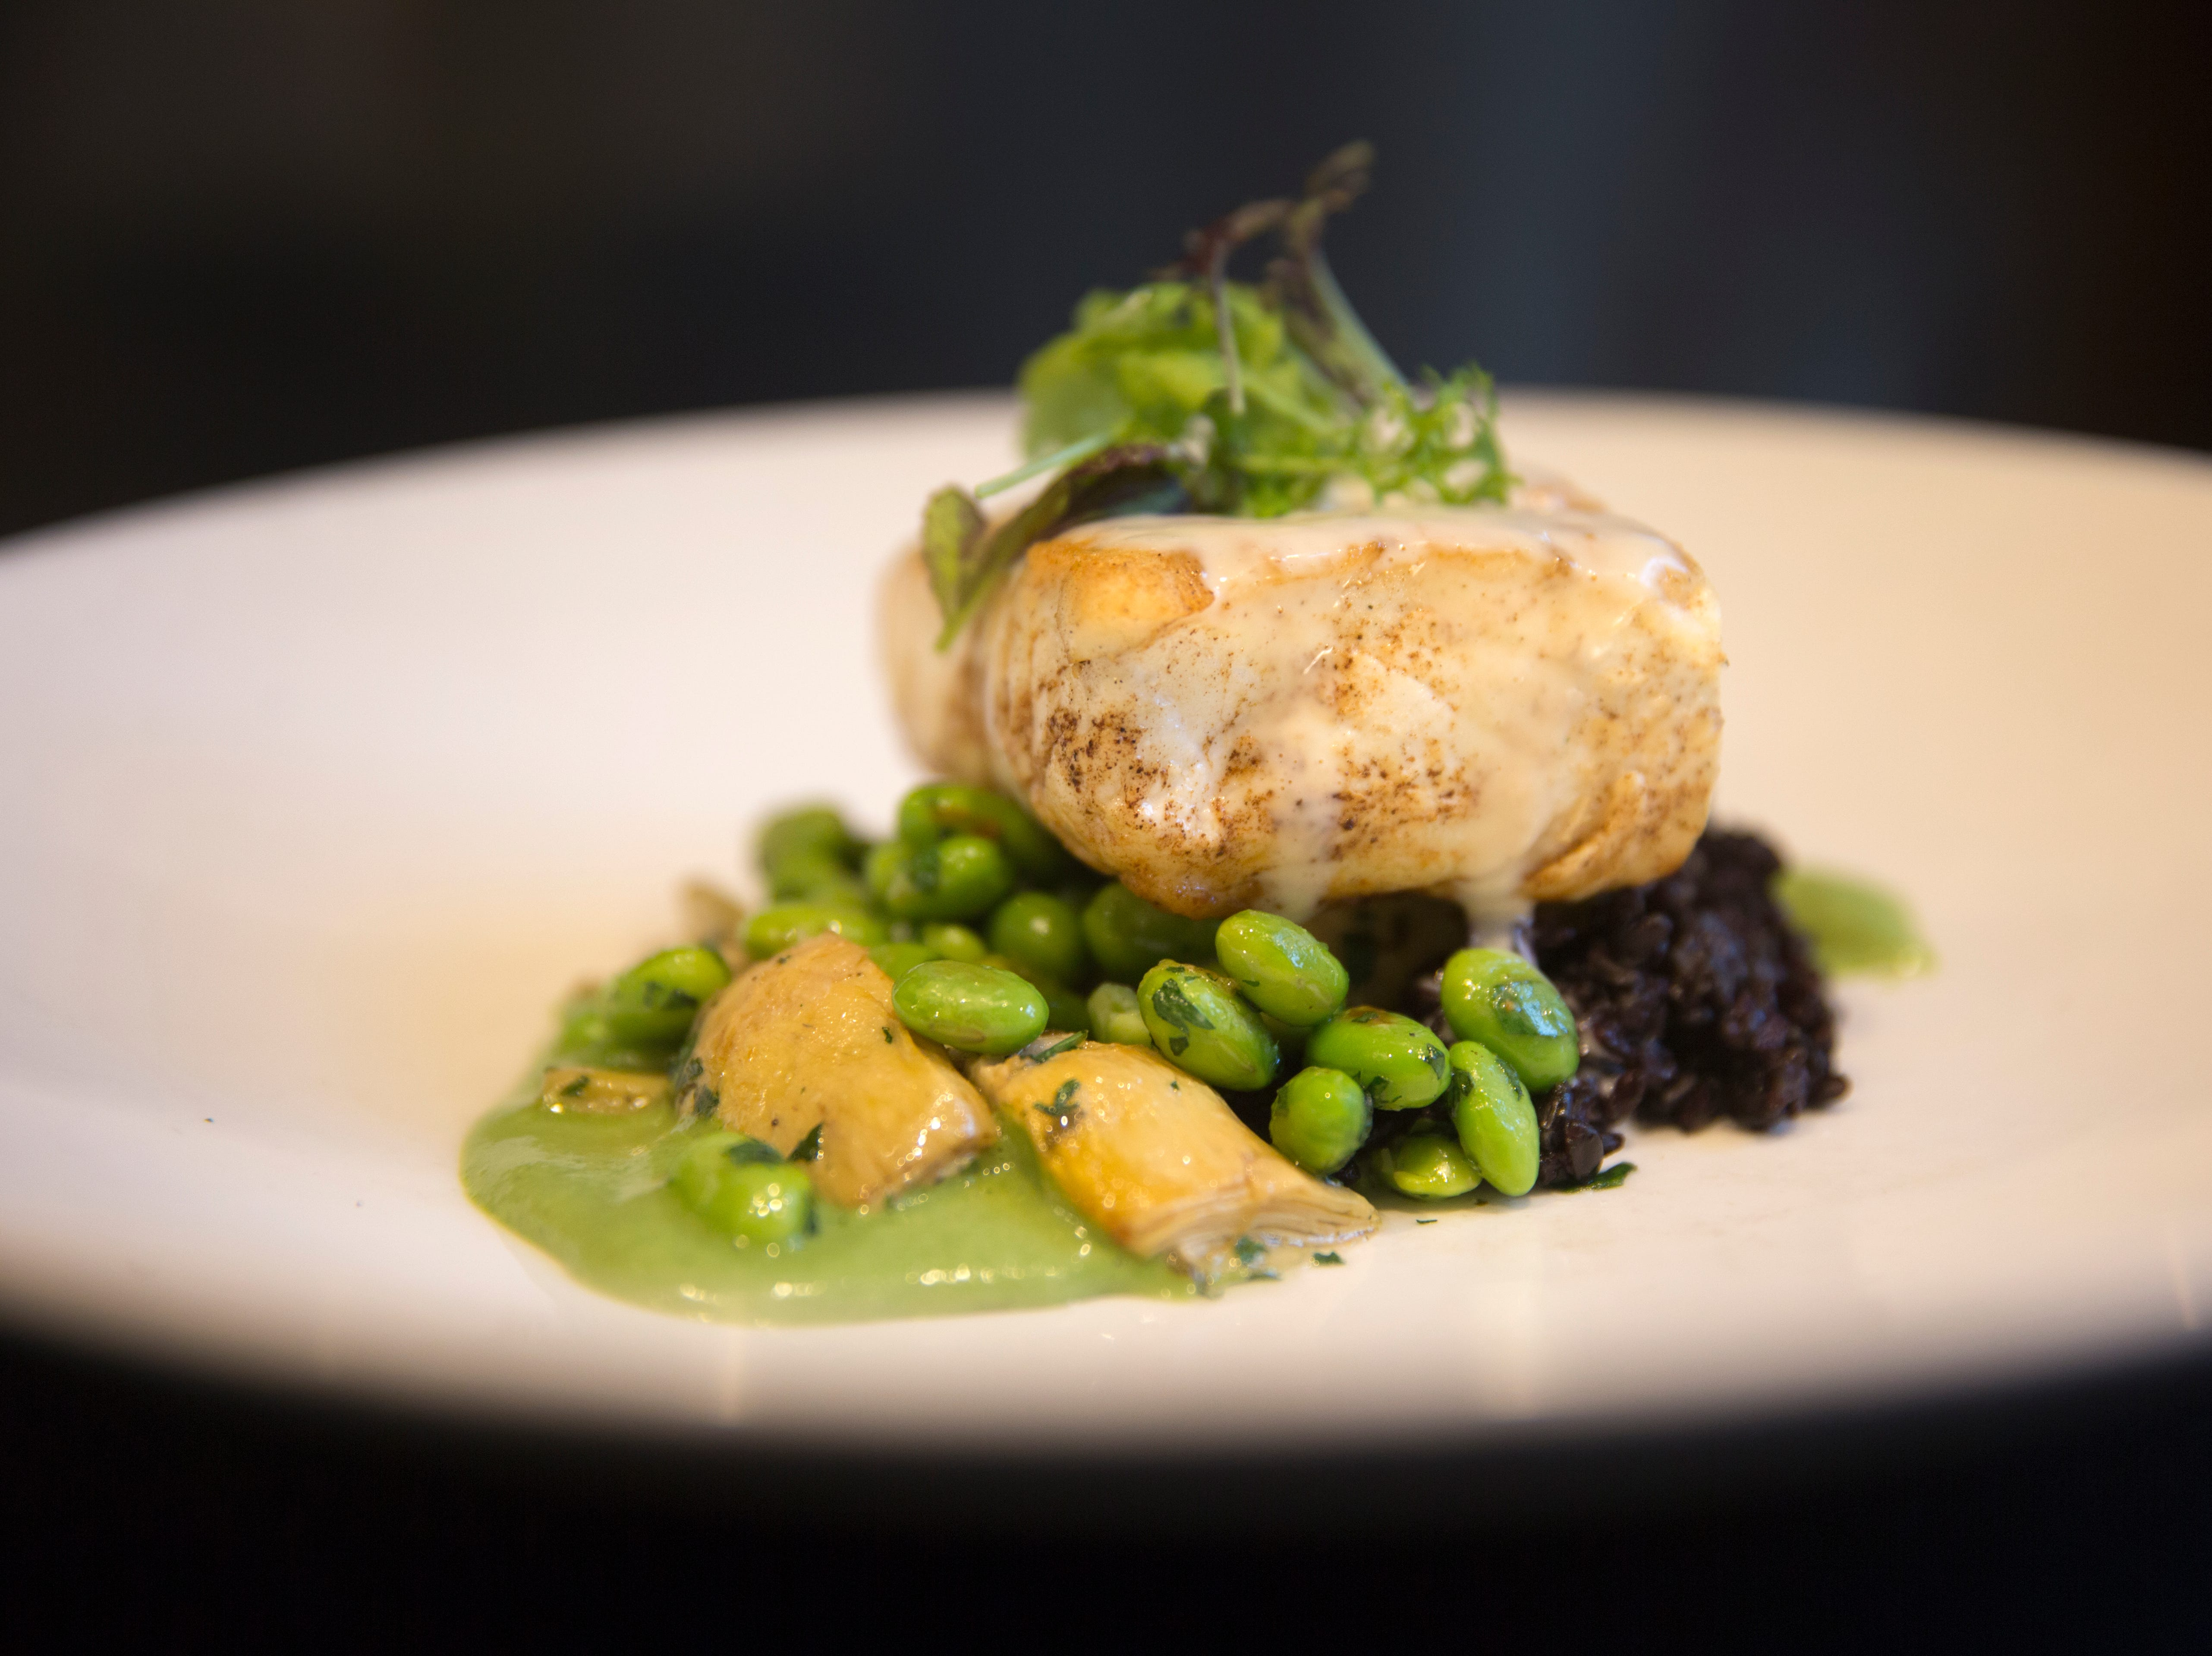 Chad Monk, The Mercer's chef de cuisine, prepares a main dish of halibut with artichoke, black rice, edamame, with sorrel cream. The dish is $36.00. The Mercer is on Vine street in Over-the-Rhine and has been serving Italian-Eureopen food since 2014. The owner, Jon Zipperstein, also owns Kaze, just up the block and Embers in Madeira. Emmy Friedrichs is the manager.